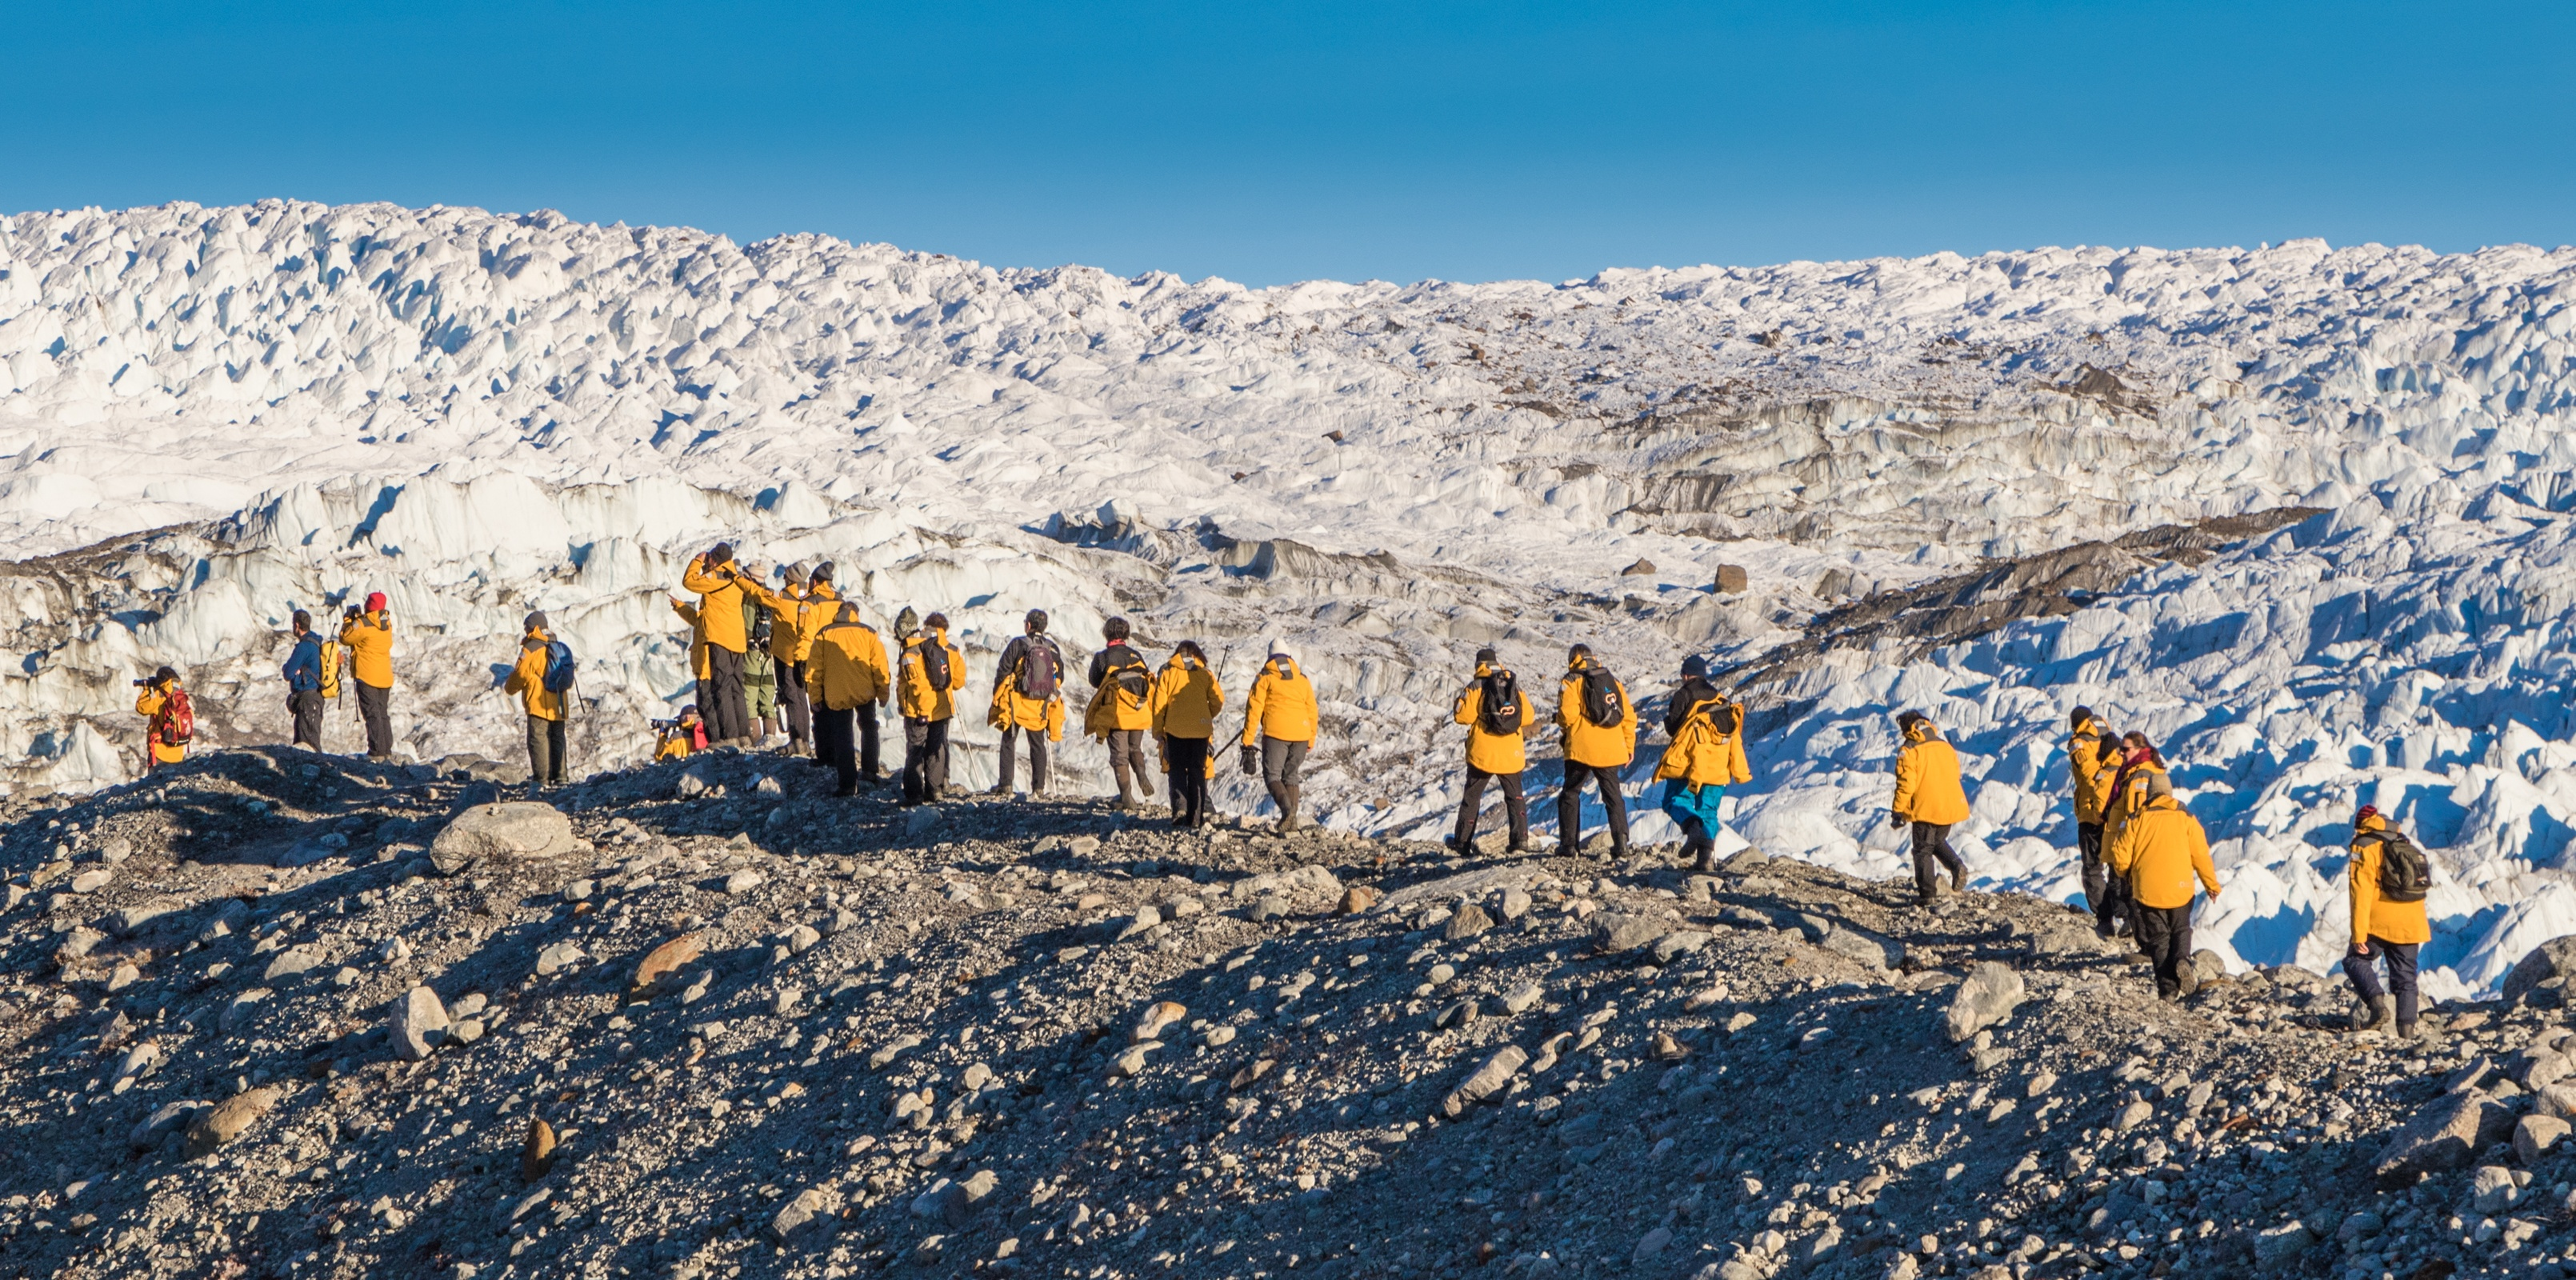 Quark passengers take a guided hike over rugged Greenland terrain on an expedition shore landing.